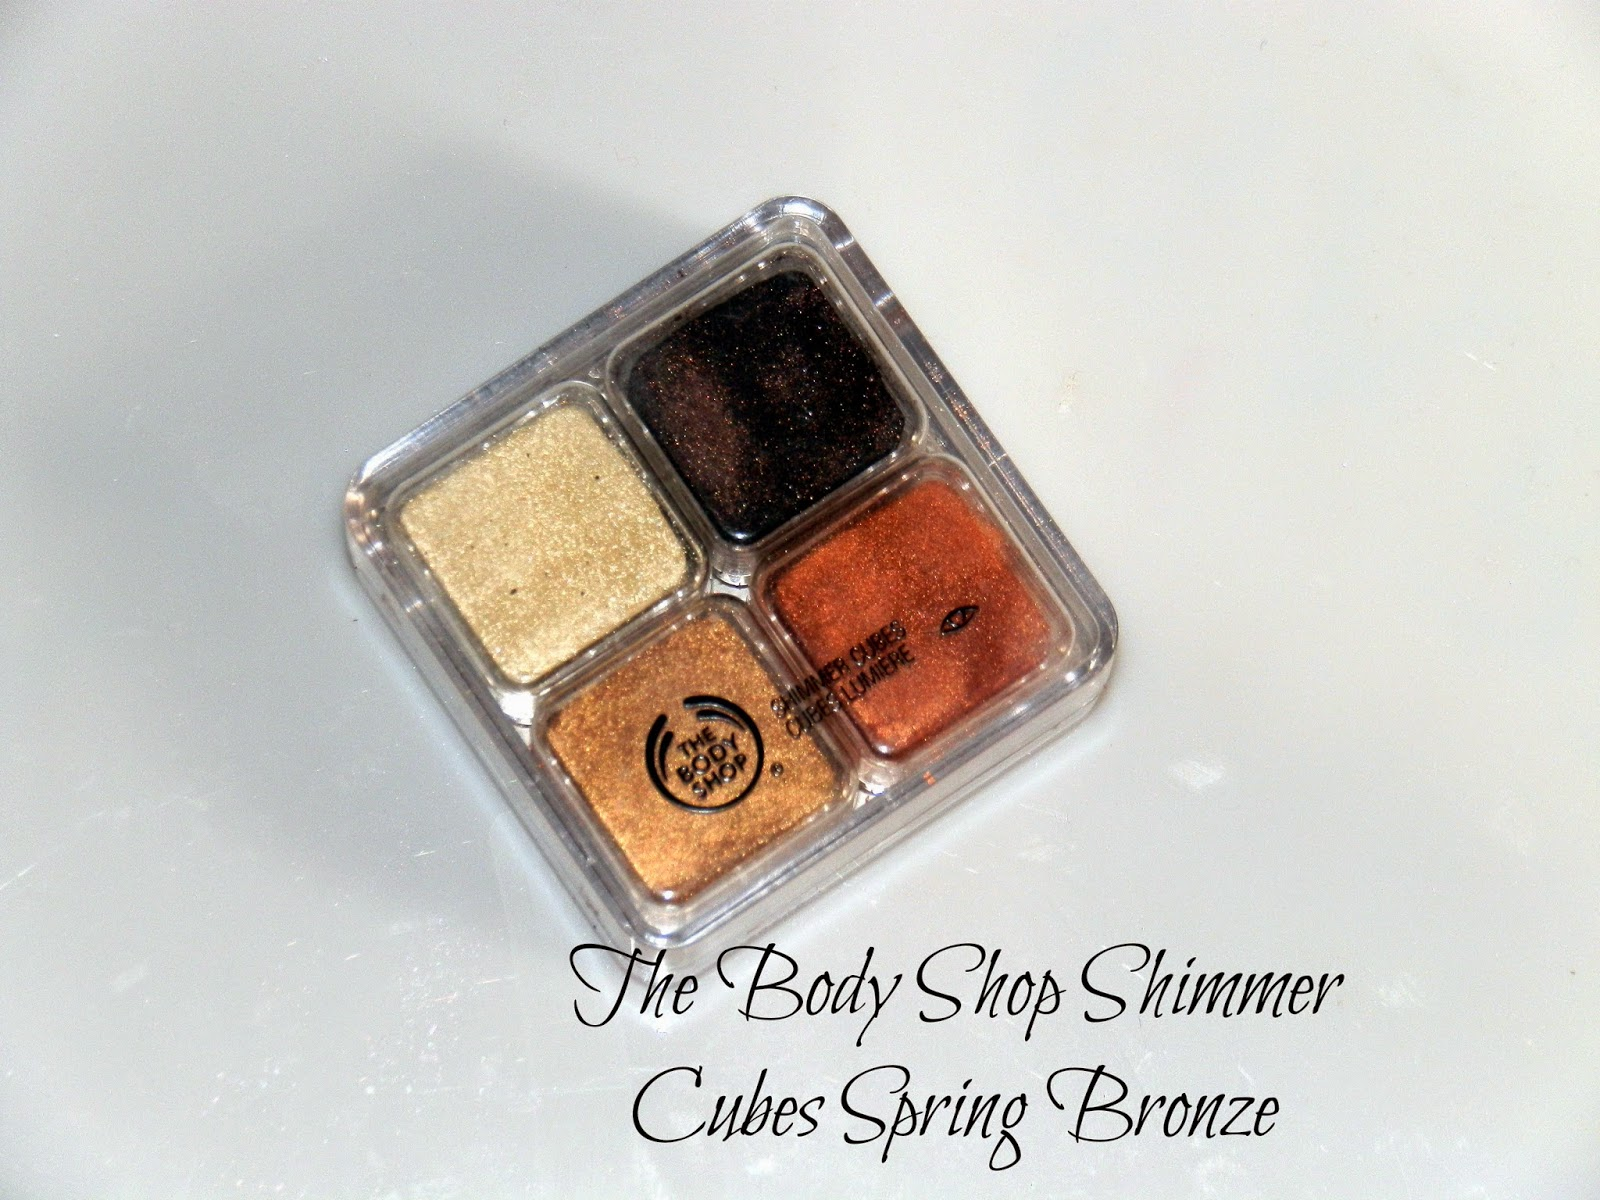 The Body Shop Shimmer Cubes Spring Bronze Swatches